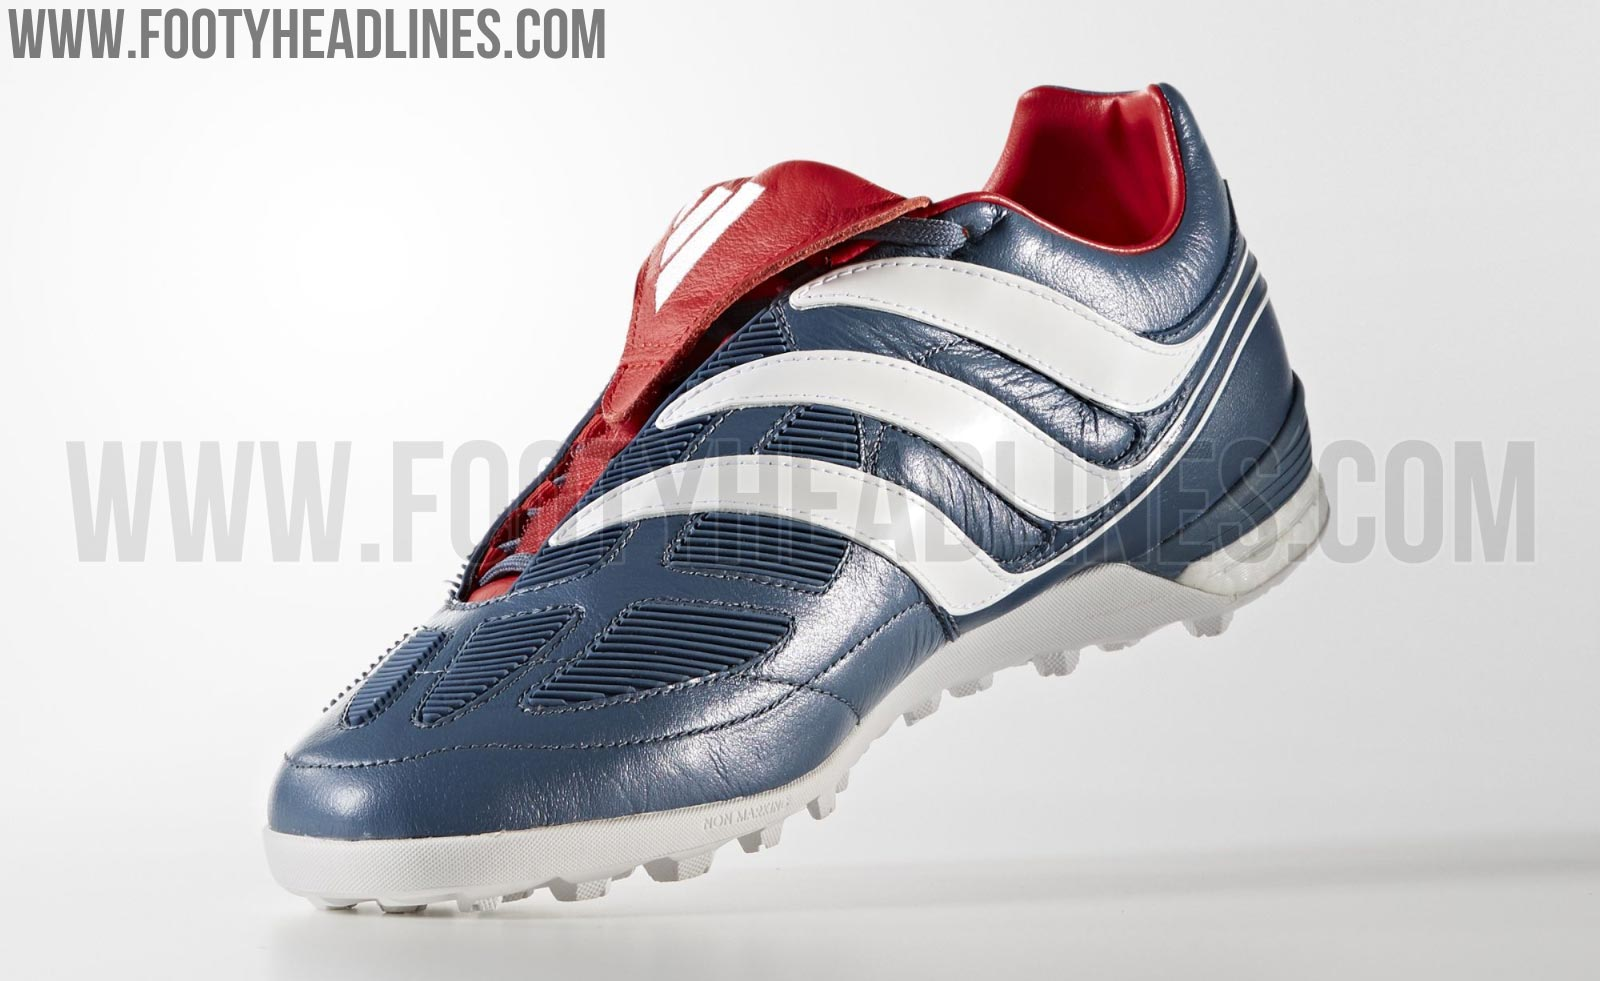 When Do Adidas Us Drop New Shoes